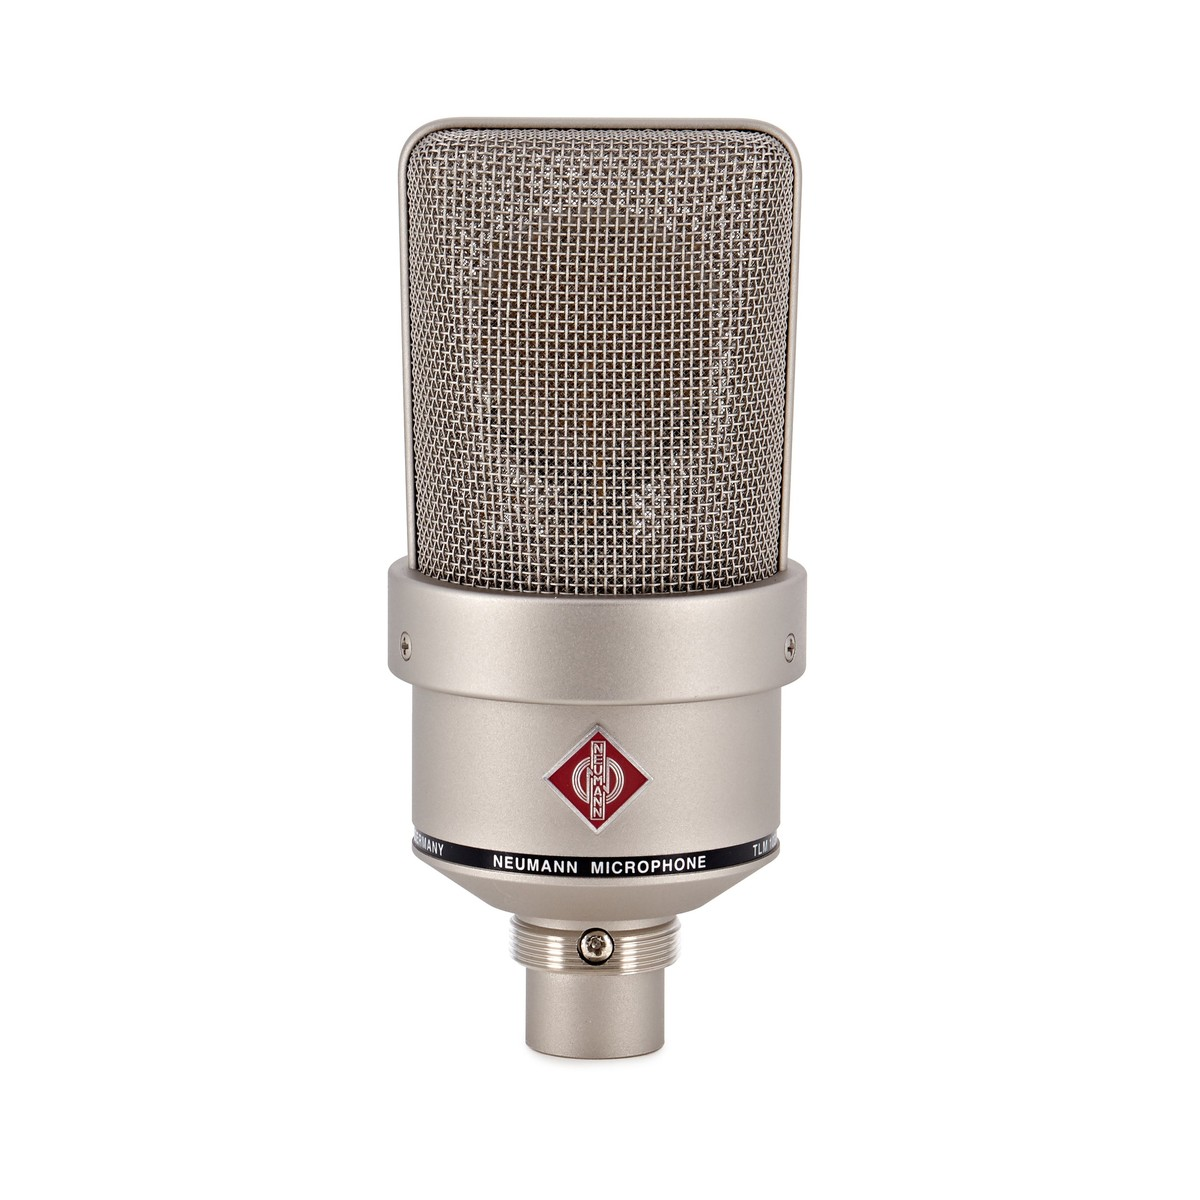 Neumann Tlm 103 Studio Set Microphone Nickel